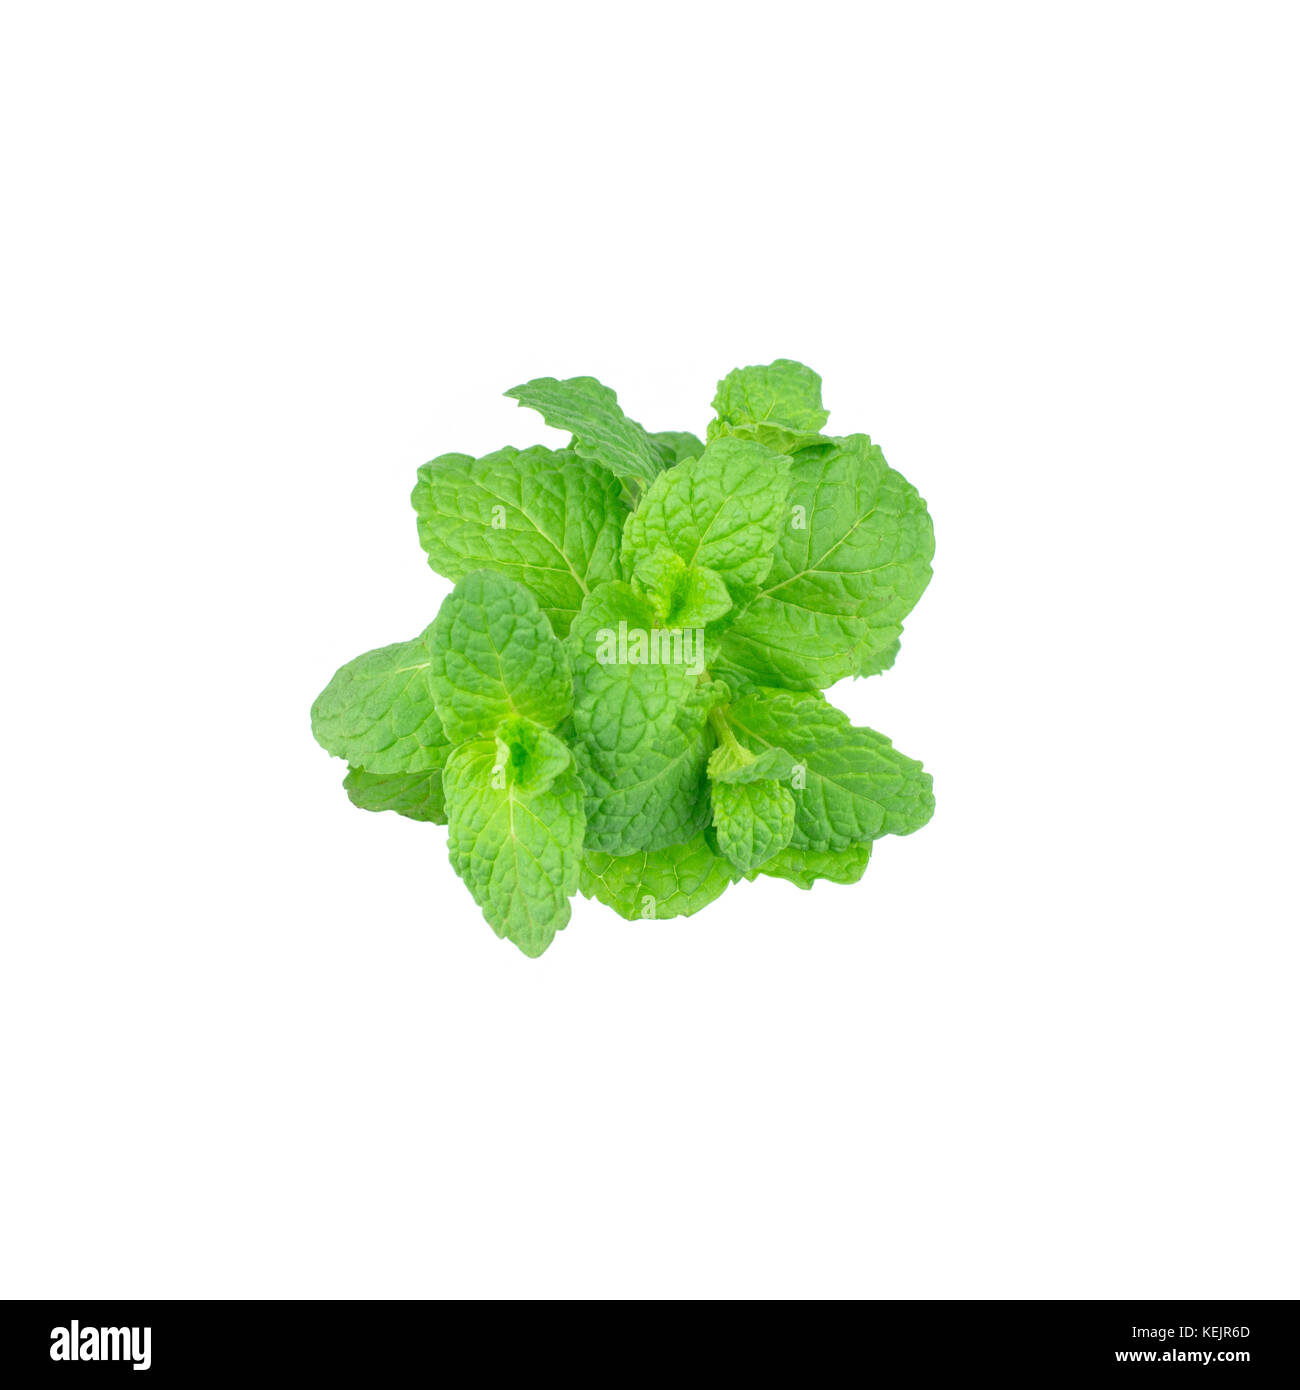 Mint leaf green plants isolated on white background